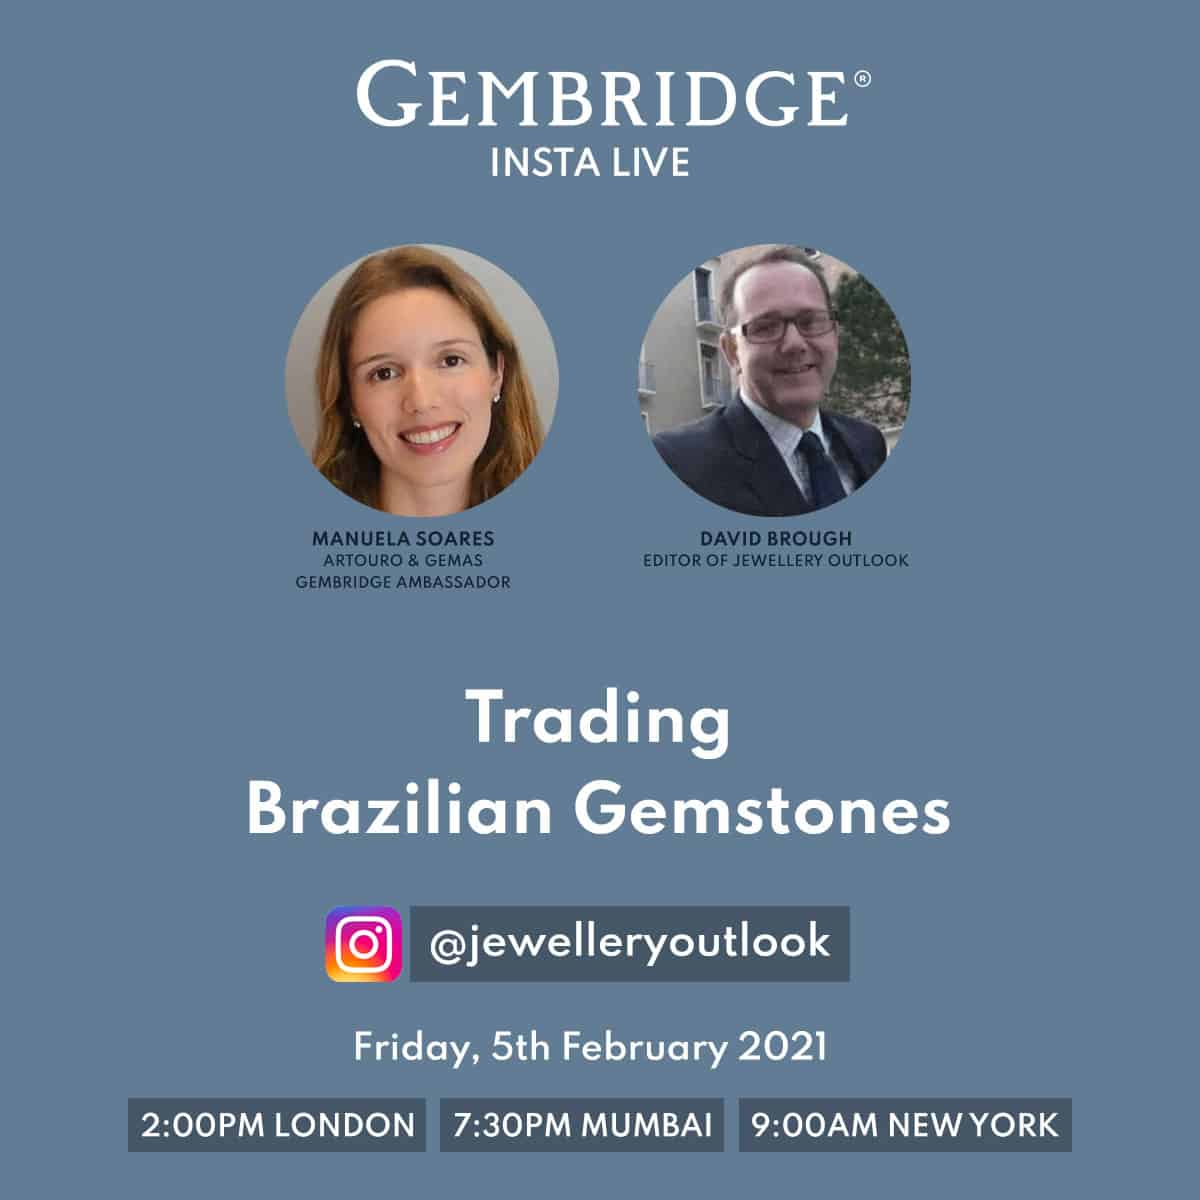 Insta live with Gembridge